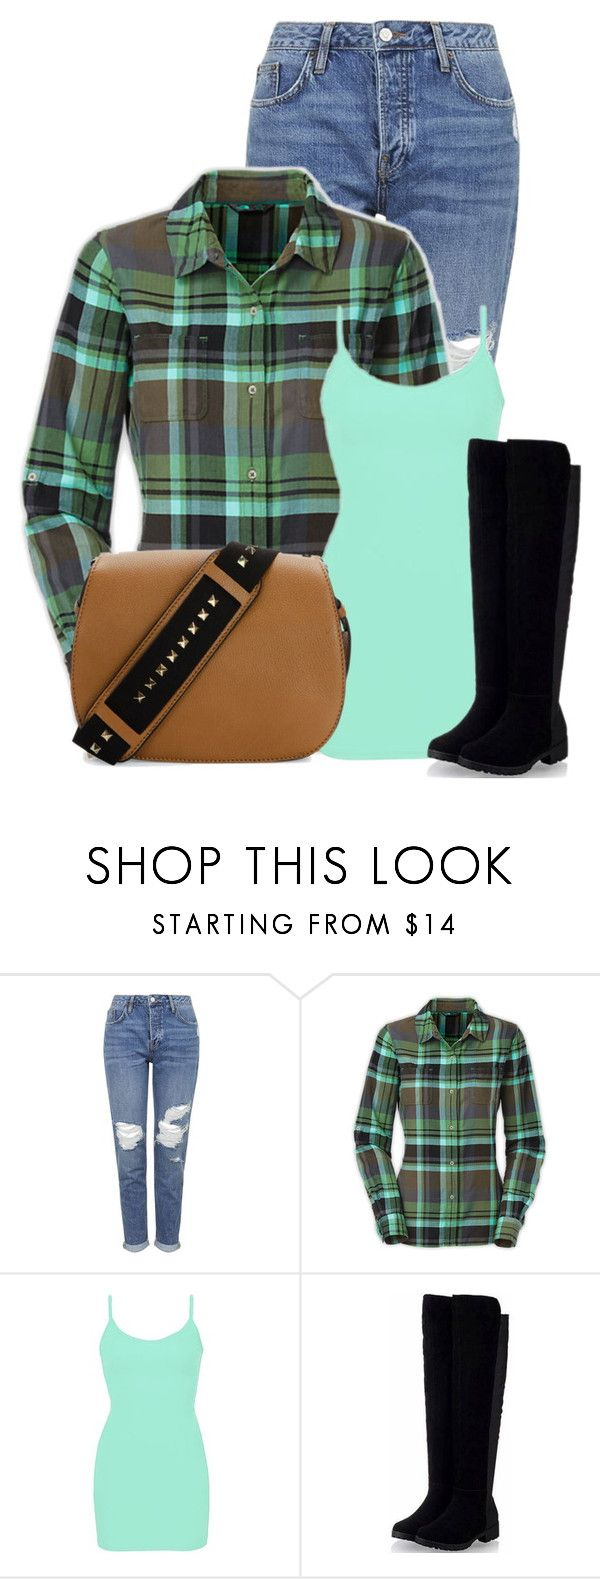 """""""Untitled #12456"""" by nanette-253 ❤ liked on Polyvore featuring moda, Topshop, The North Face, BKE core e Valentino"""